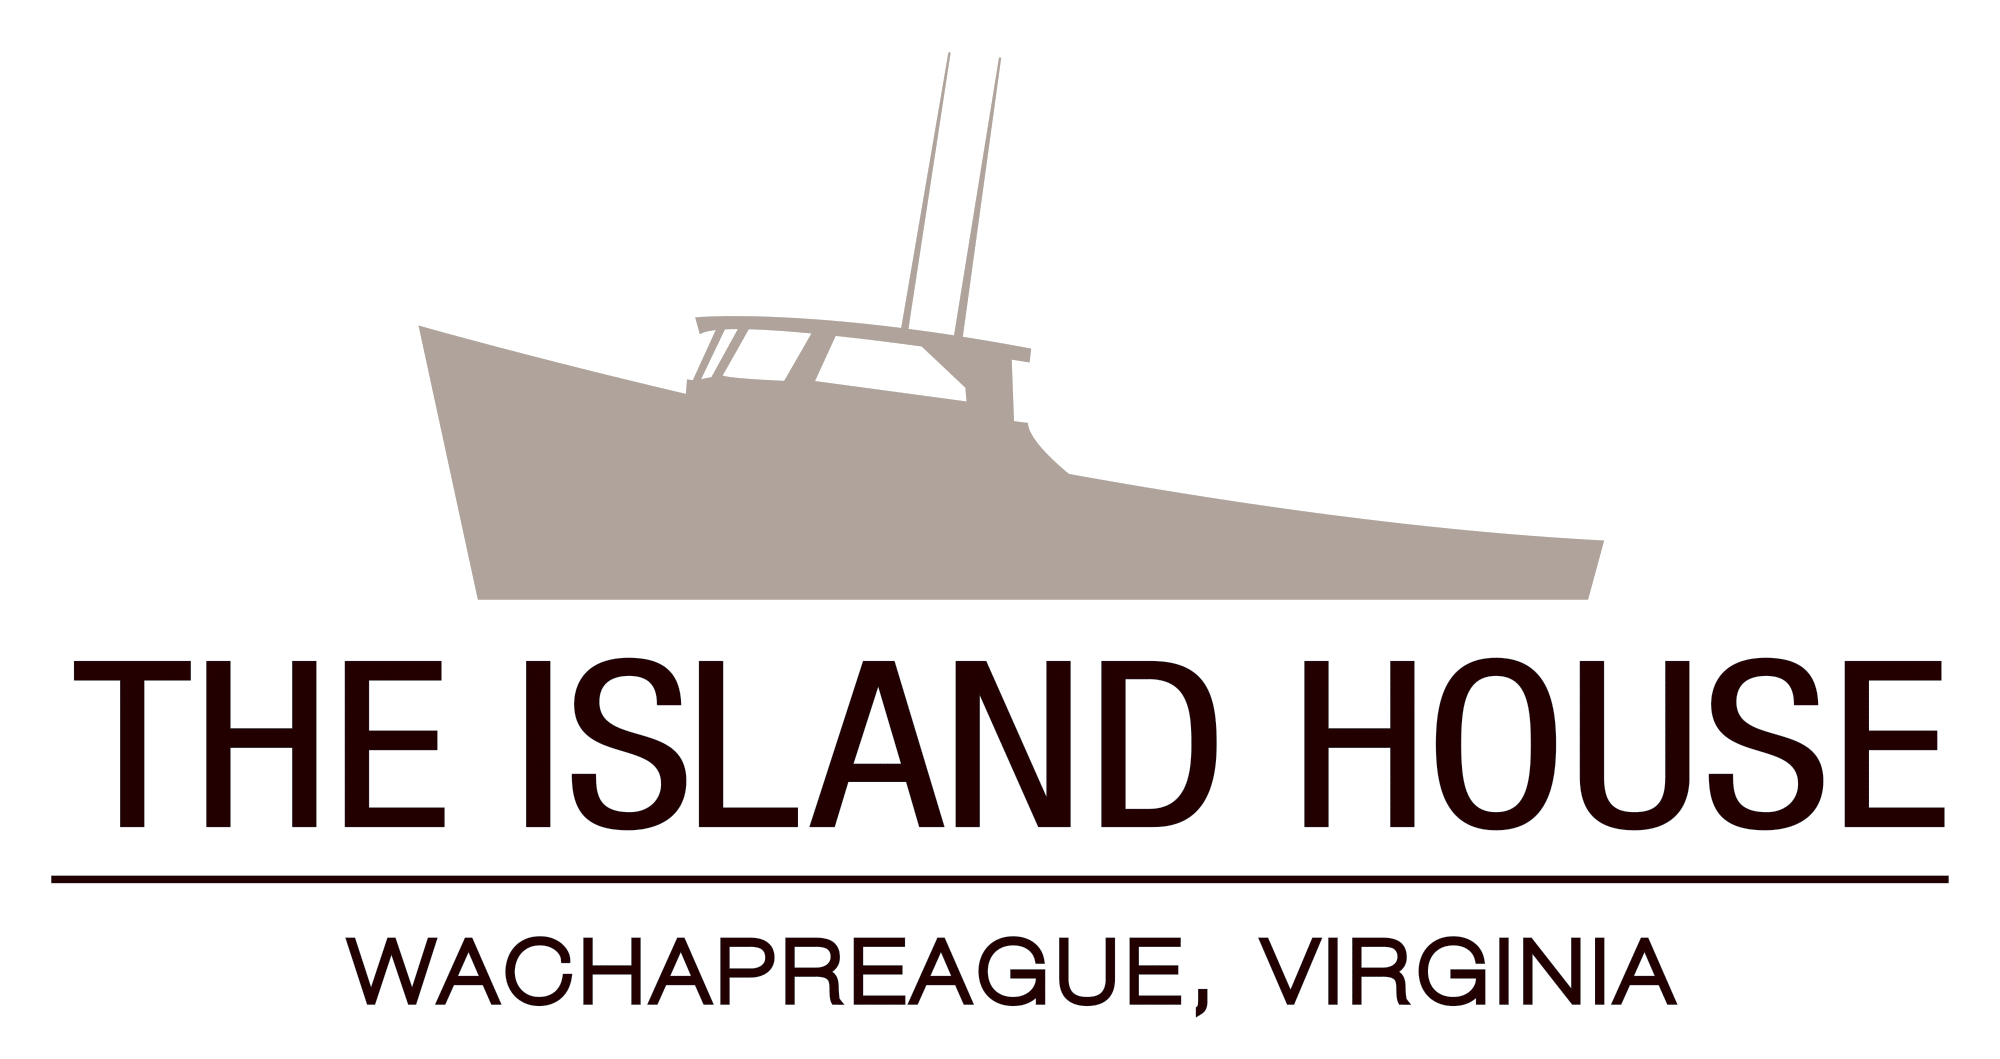 The Island House - Wachapreague Virginia